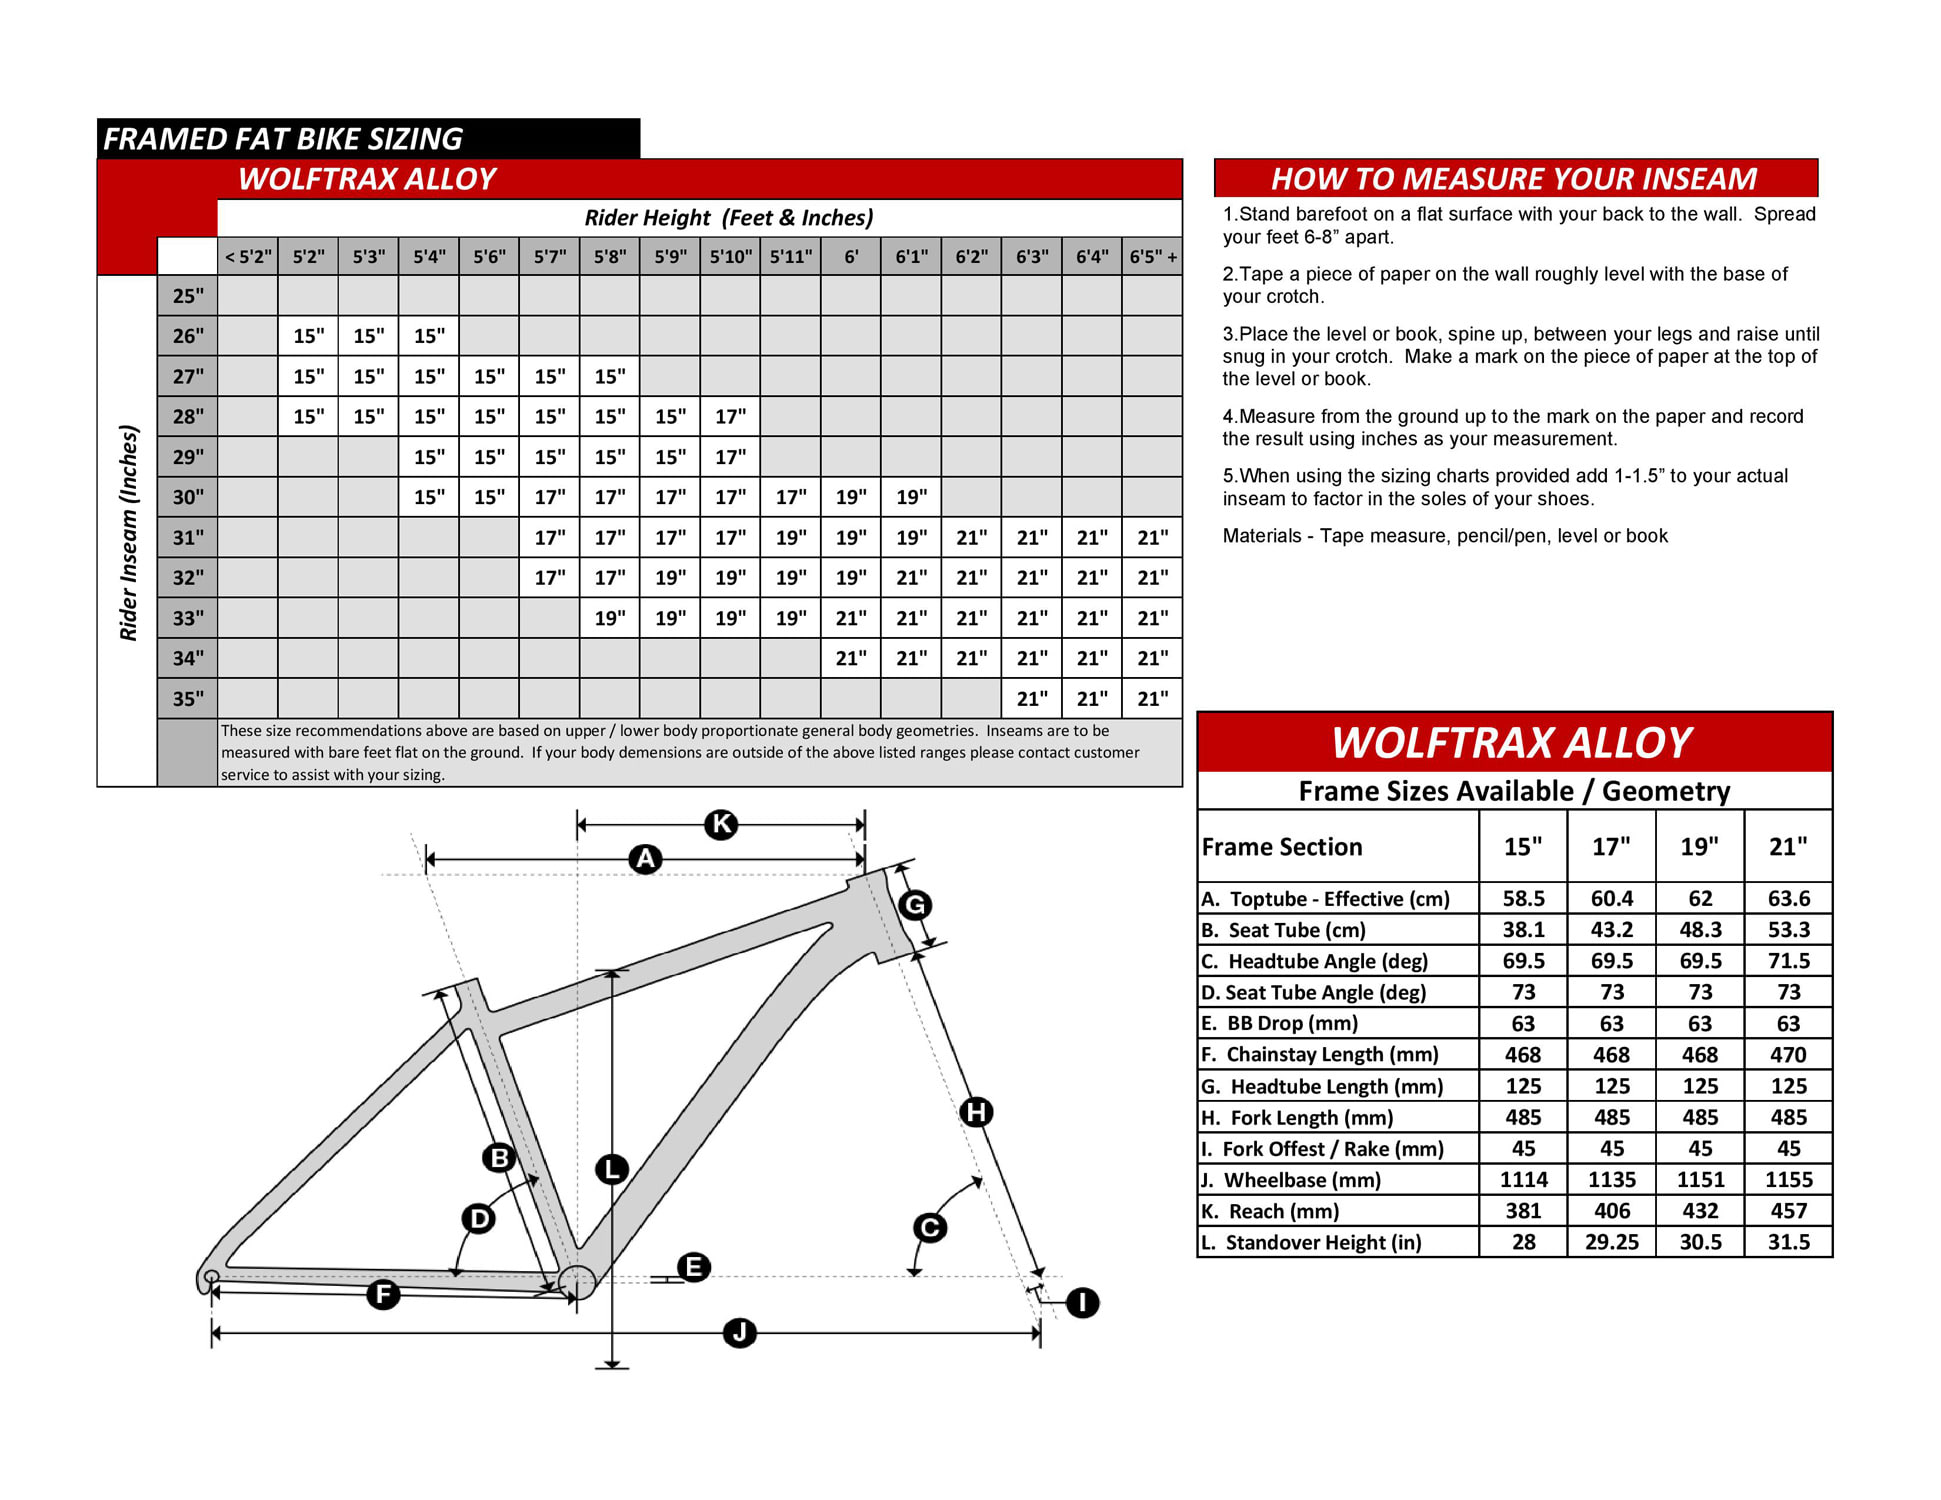 Wolftrax Alloy Fat Bike Geometry Specs